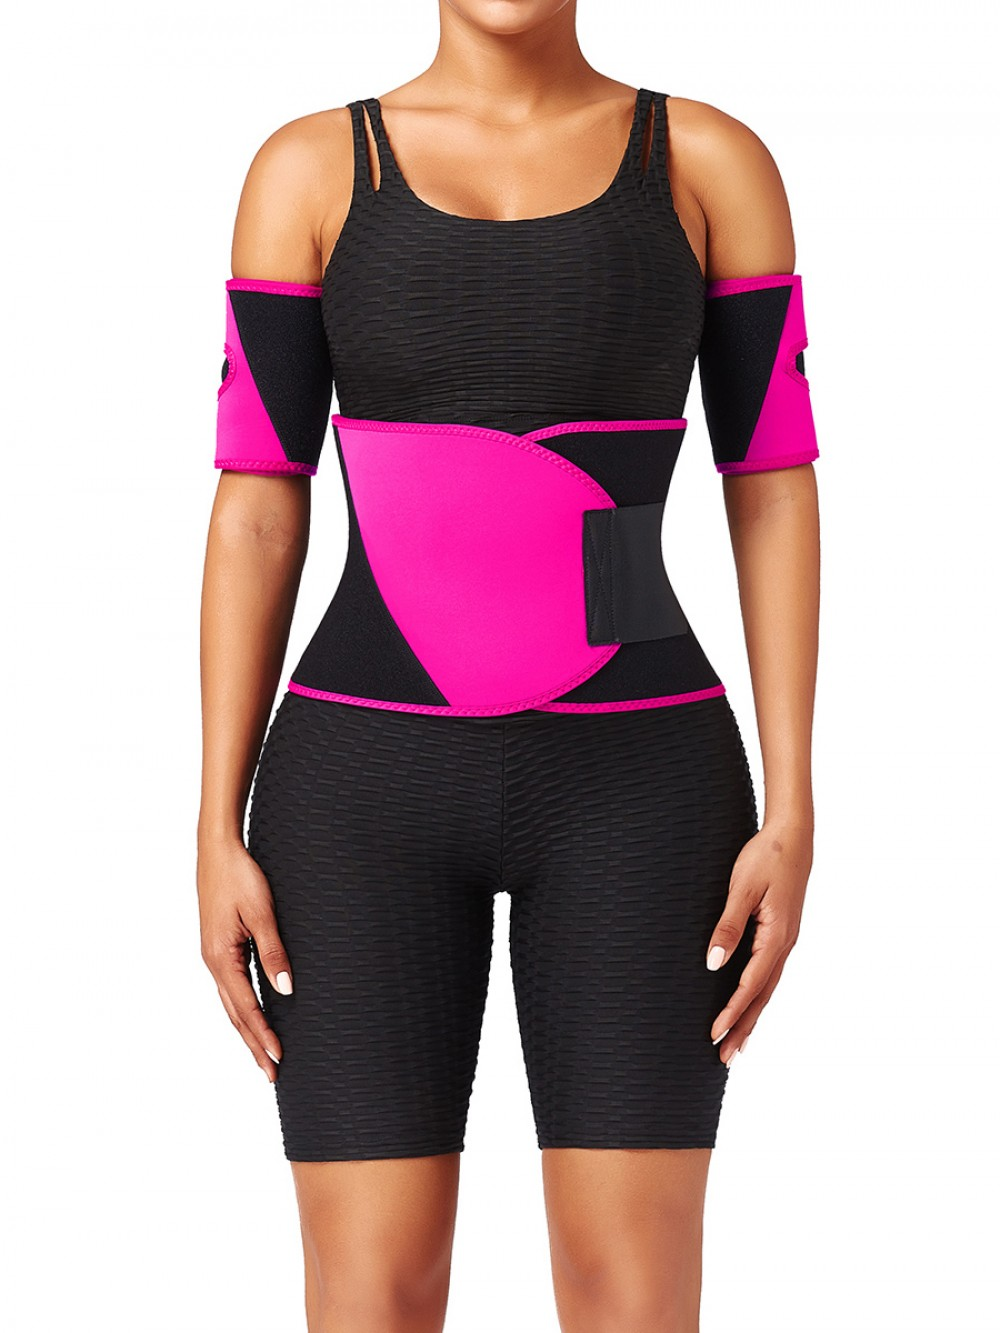 Rose Red Plus Size Neoprene Embossed Waist Trainer Stretch